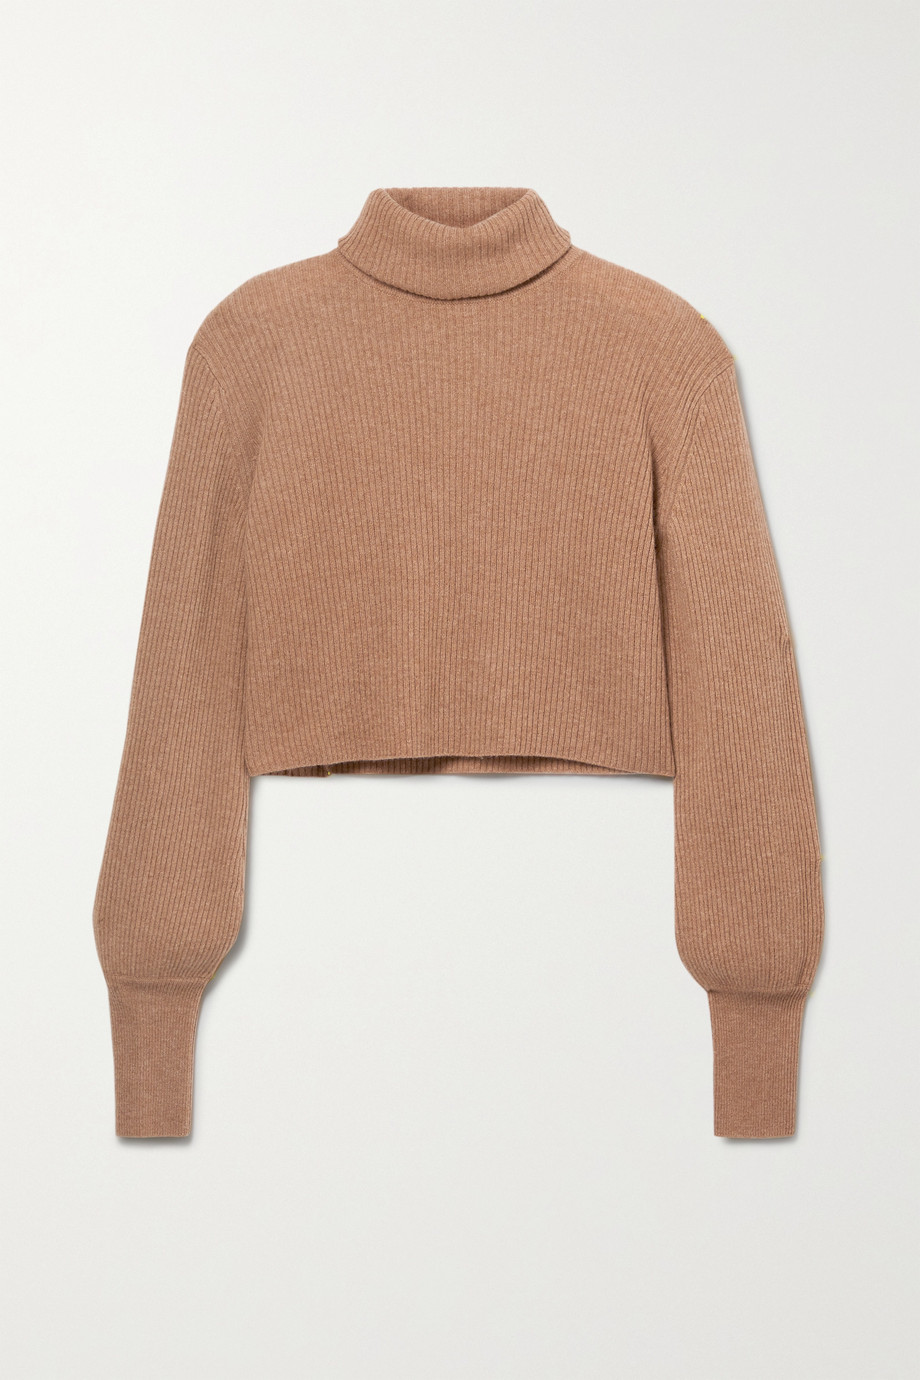 Reformation Luisa cropped ribbed recycled cashmere-blend turtleneck sweater